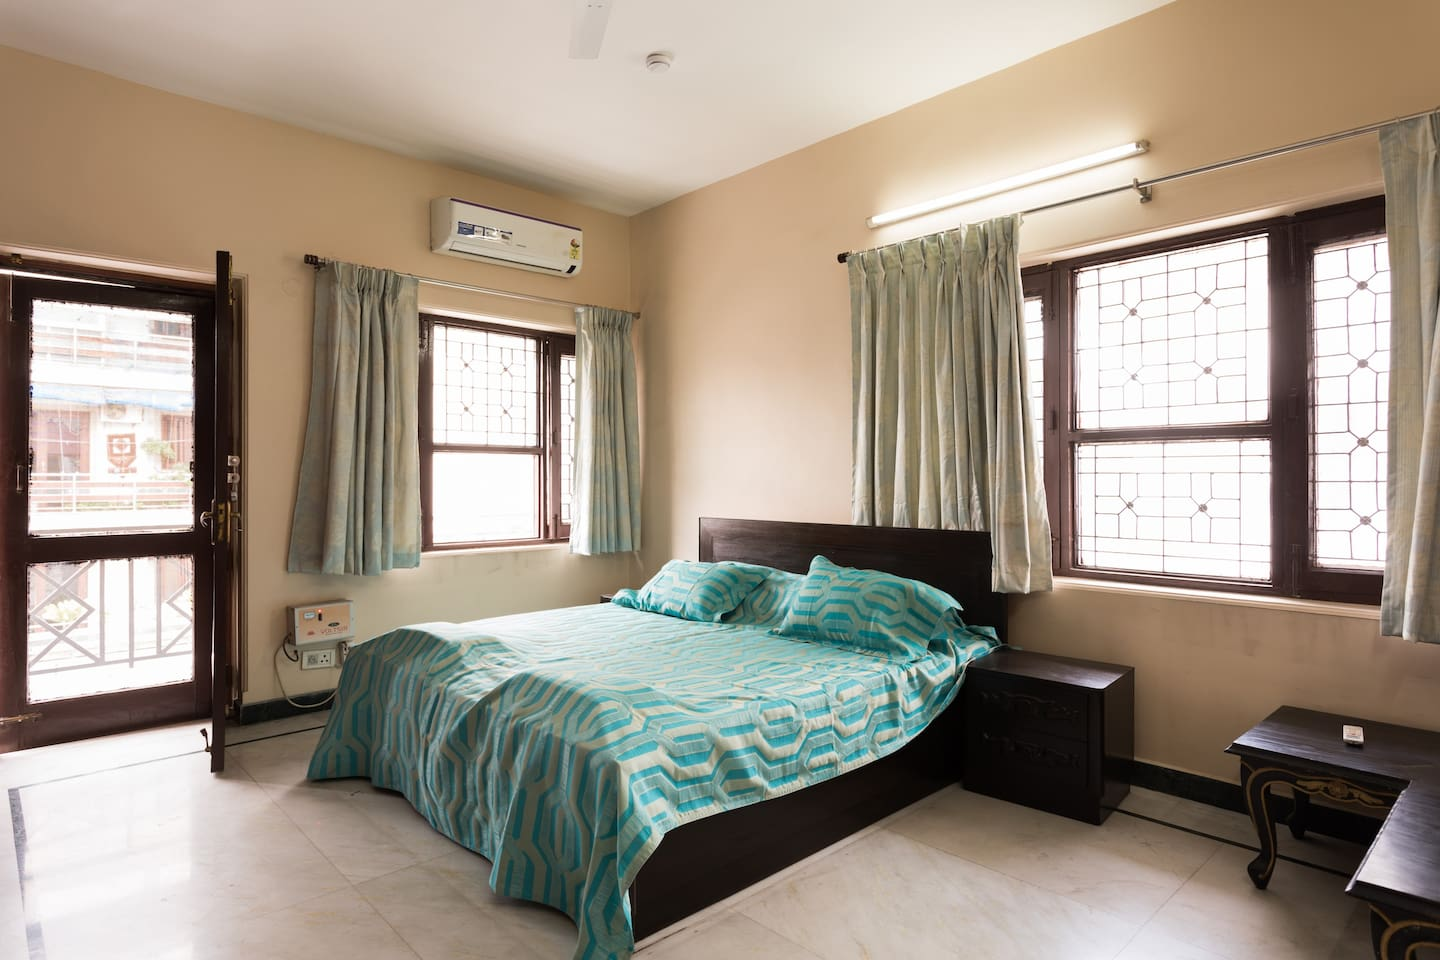 Bedroom2-For you to enjoy A Good Nights Sleep After a Hard Day on a perfect mattress.Windows on both sides ensure your bed room is well lit and airy if you need it that way. Delight In The large Comfortable Beds And Awaken Bubbling With Energy.